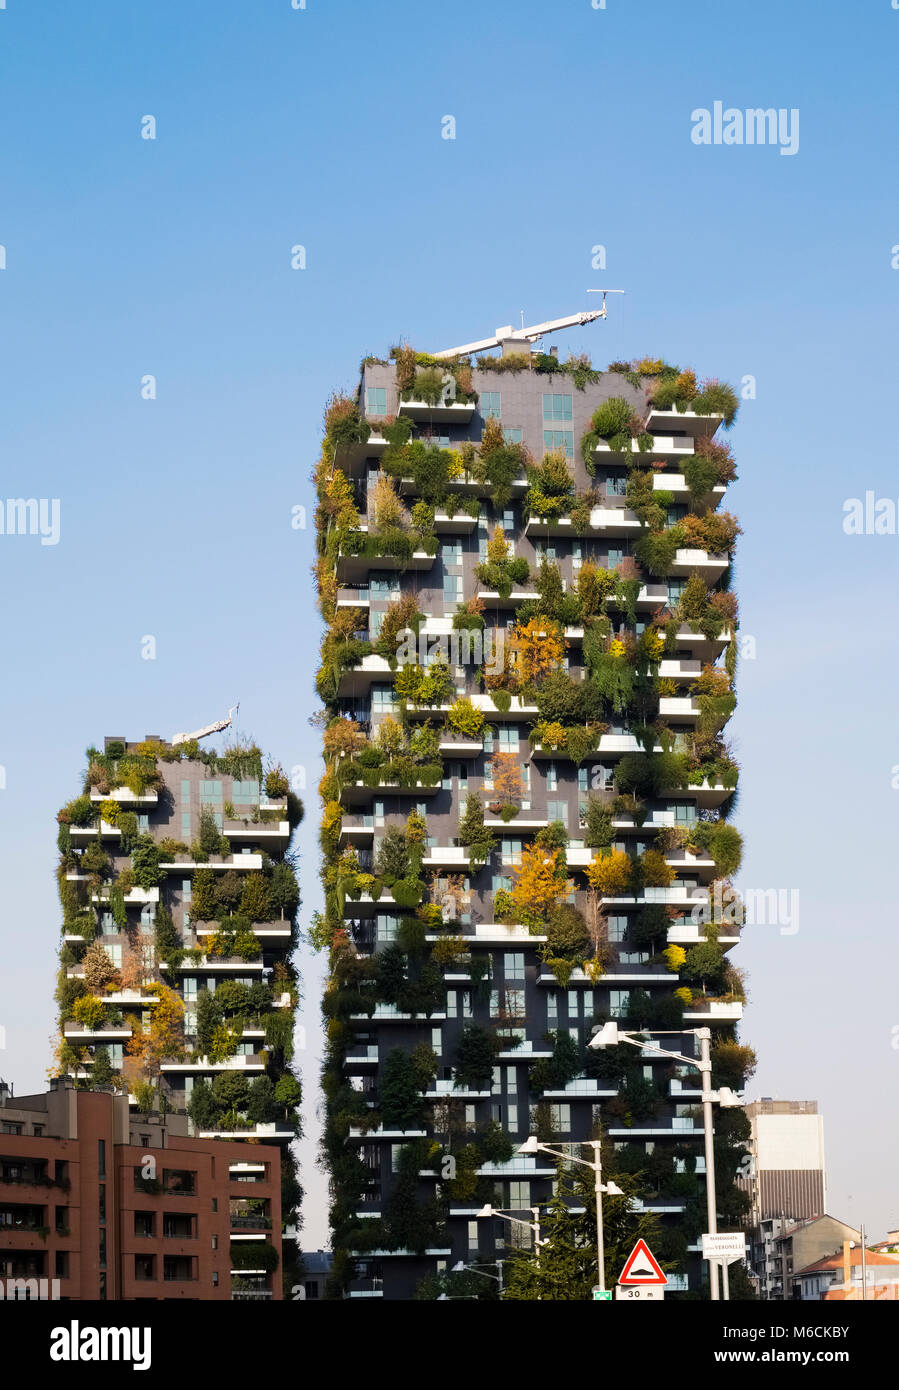 Bosco Verticale (Vertical Forest), award-winning residential towers in the Porta Nuova district of Milan, Italy. - Stock Image